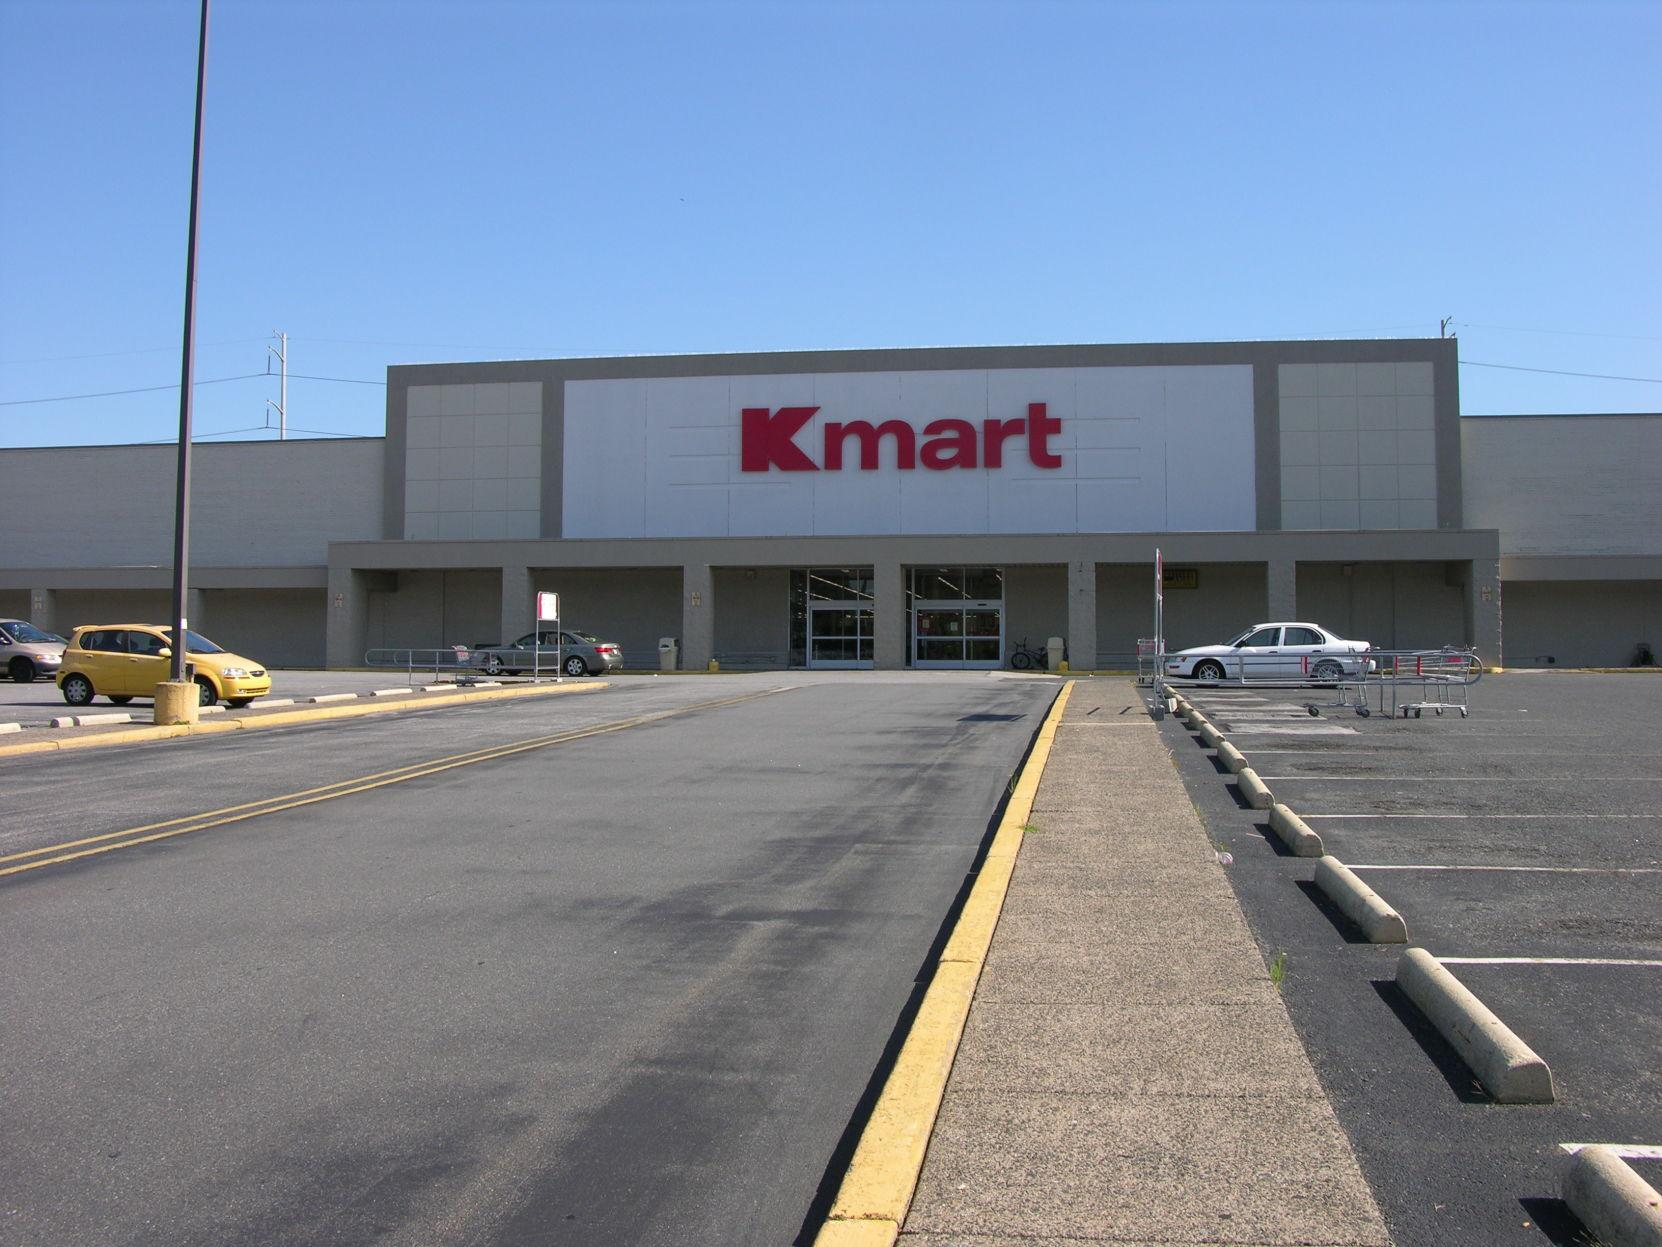 Kmart Stores to Disappear From Delaware County Landscape, Last 2 Stores Closing